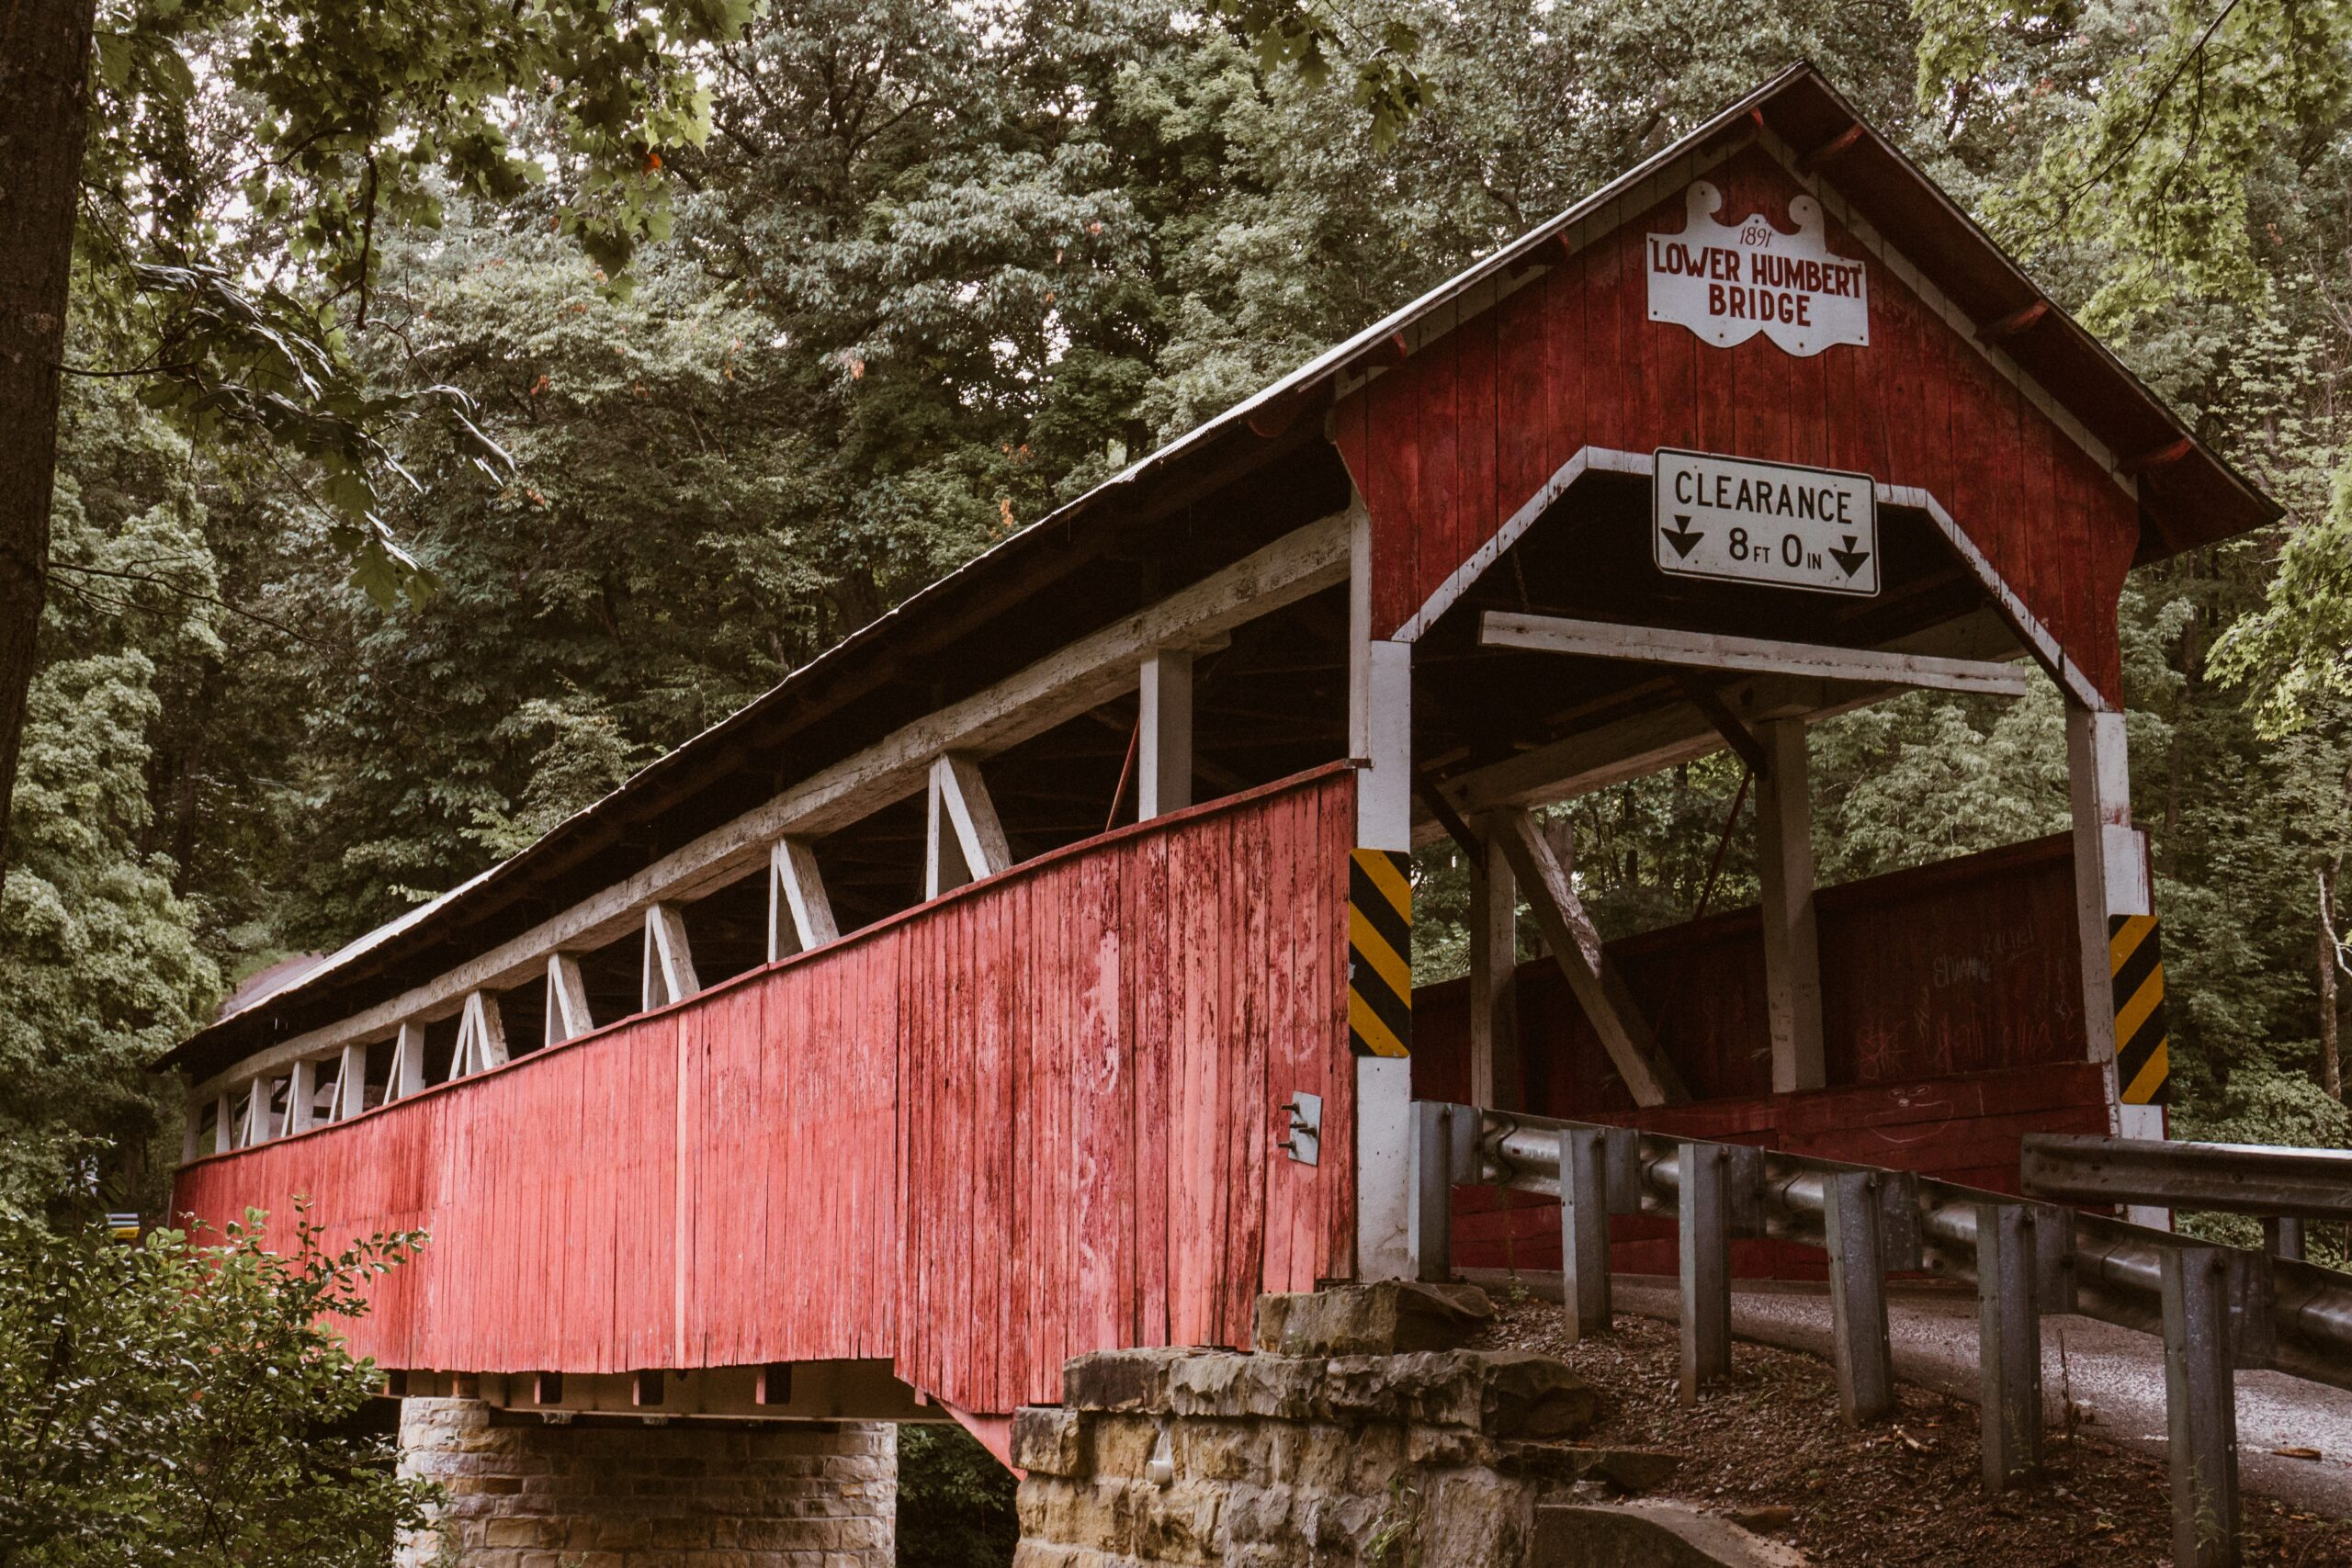 A red, one-lane covered bridge surrounded by green trees.